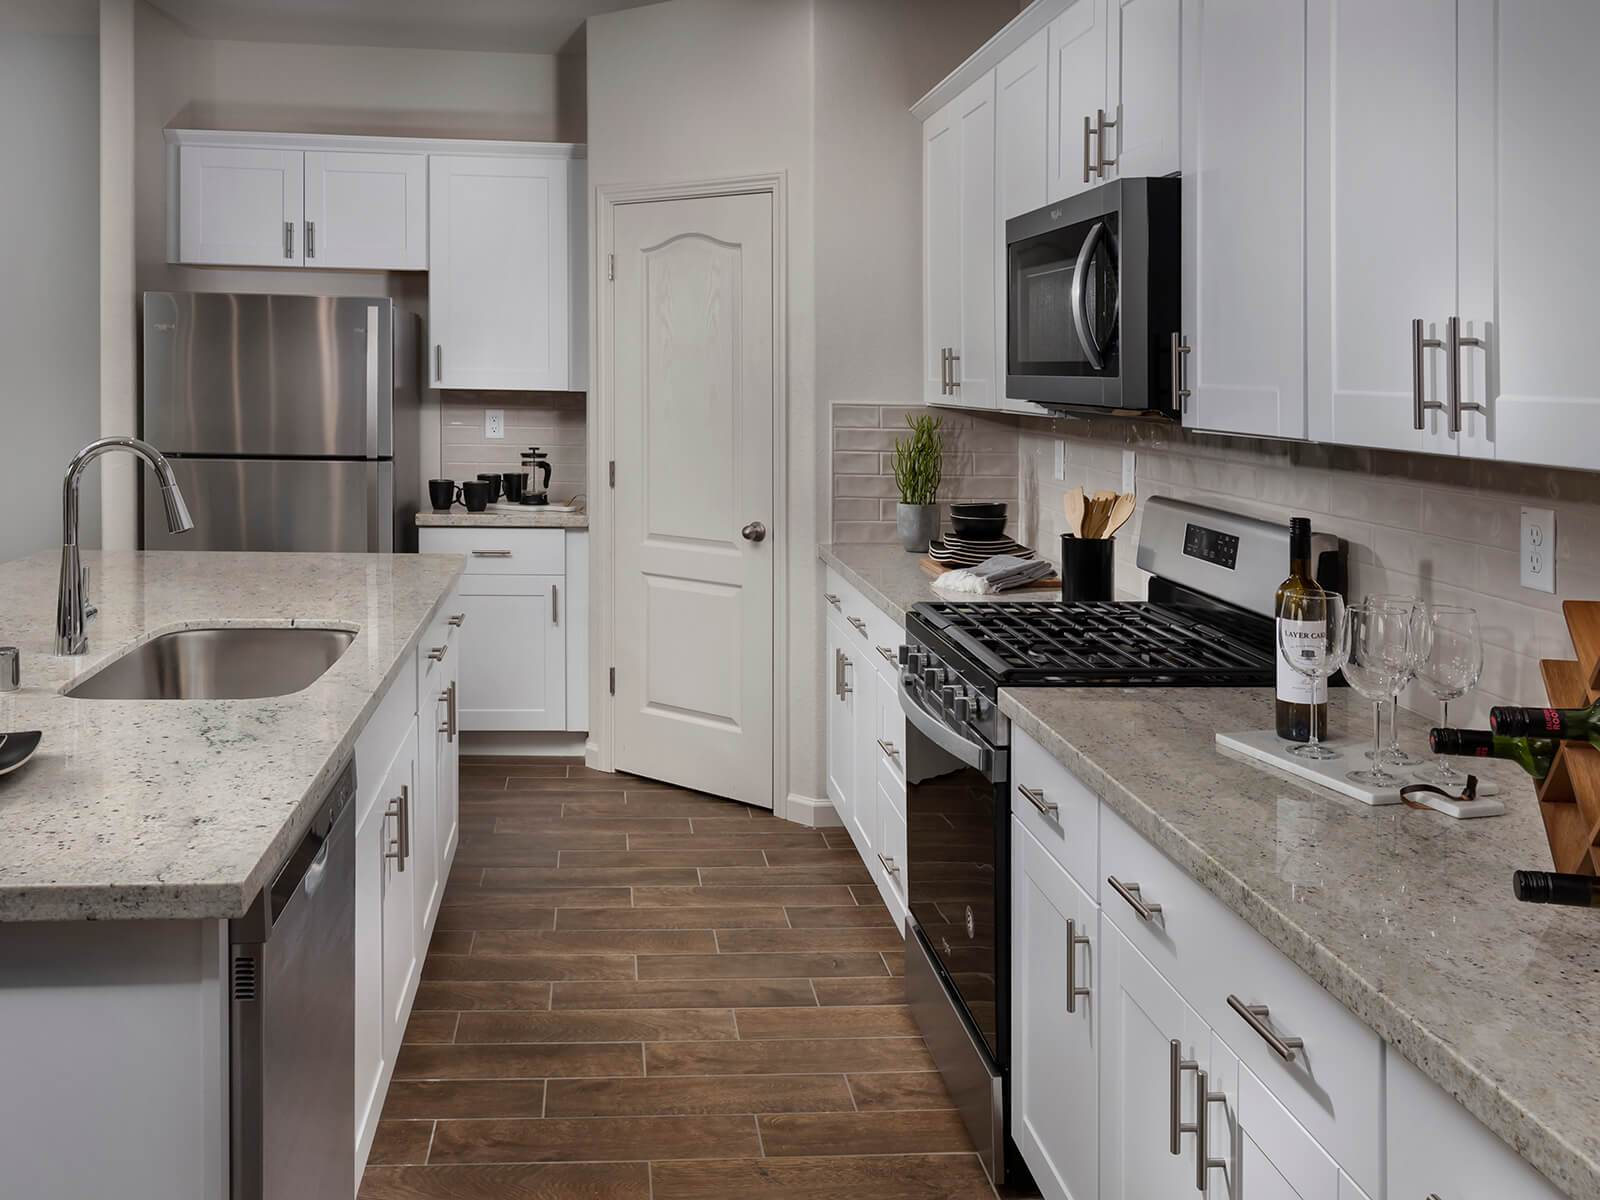 Kitchen featured in the Residence 4 By Meritage Homes in Santa Cruz, CA